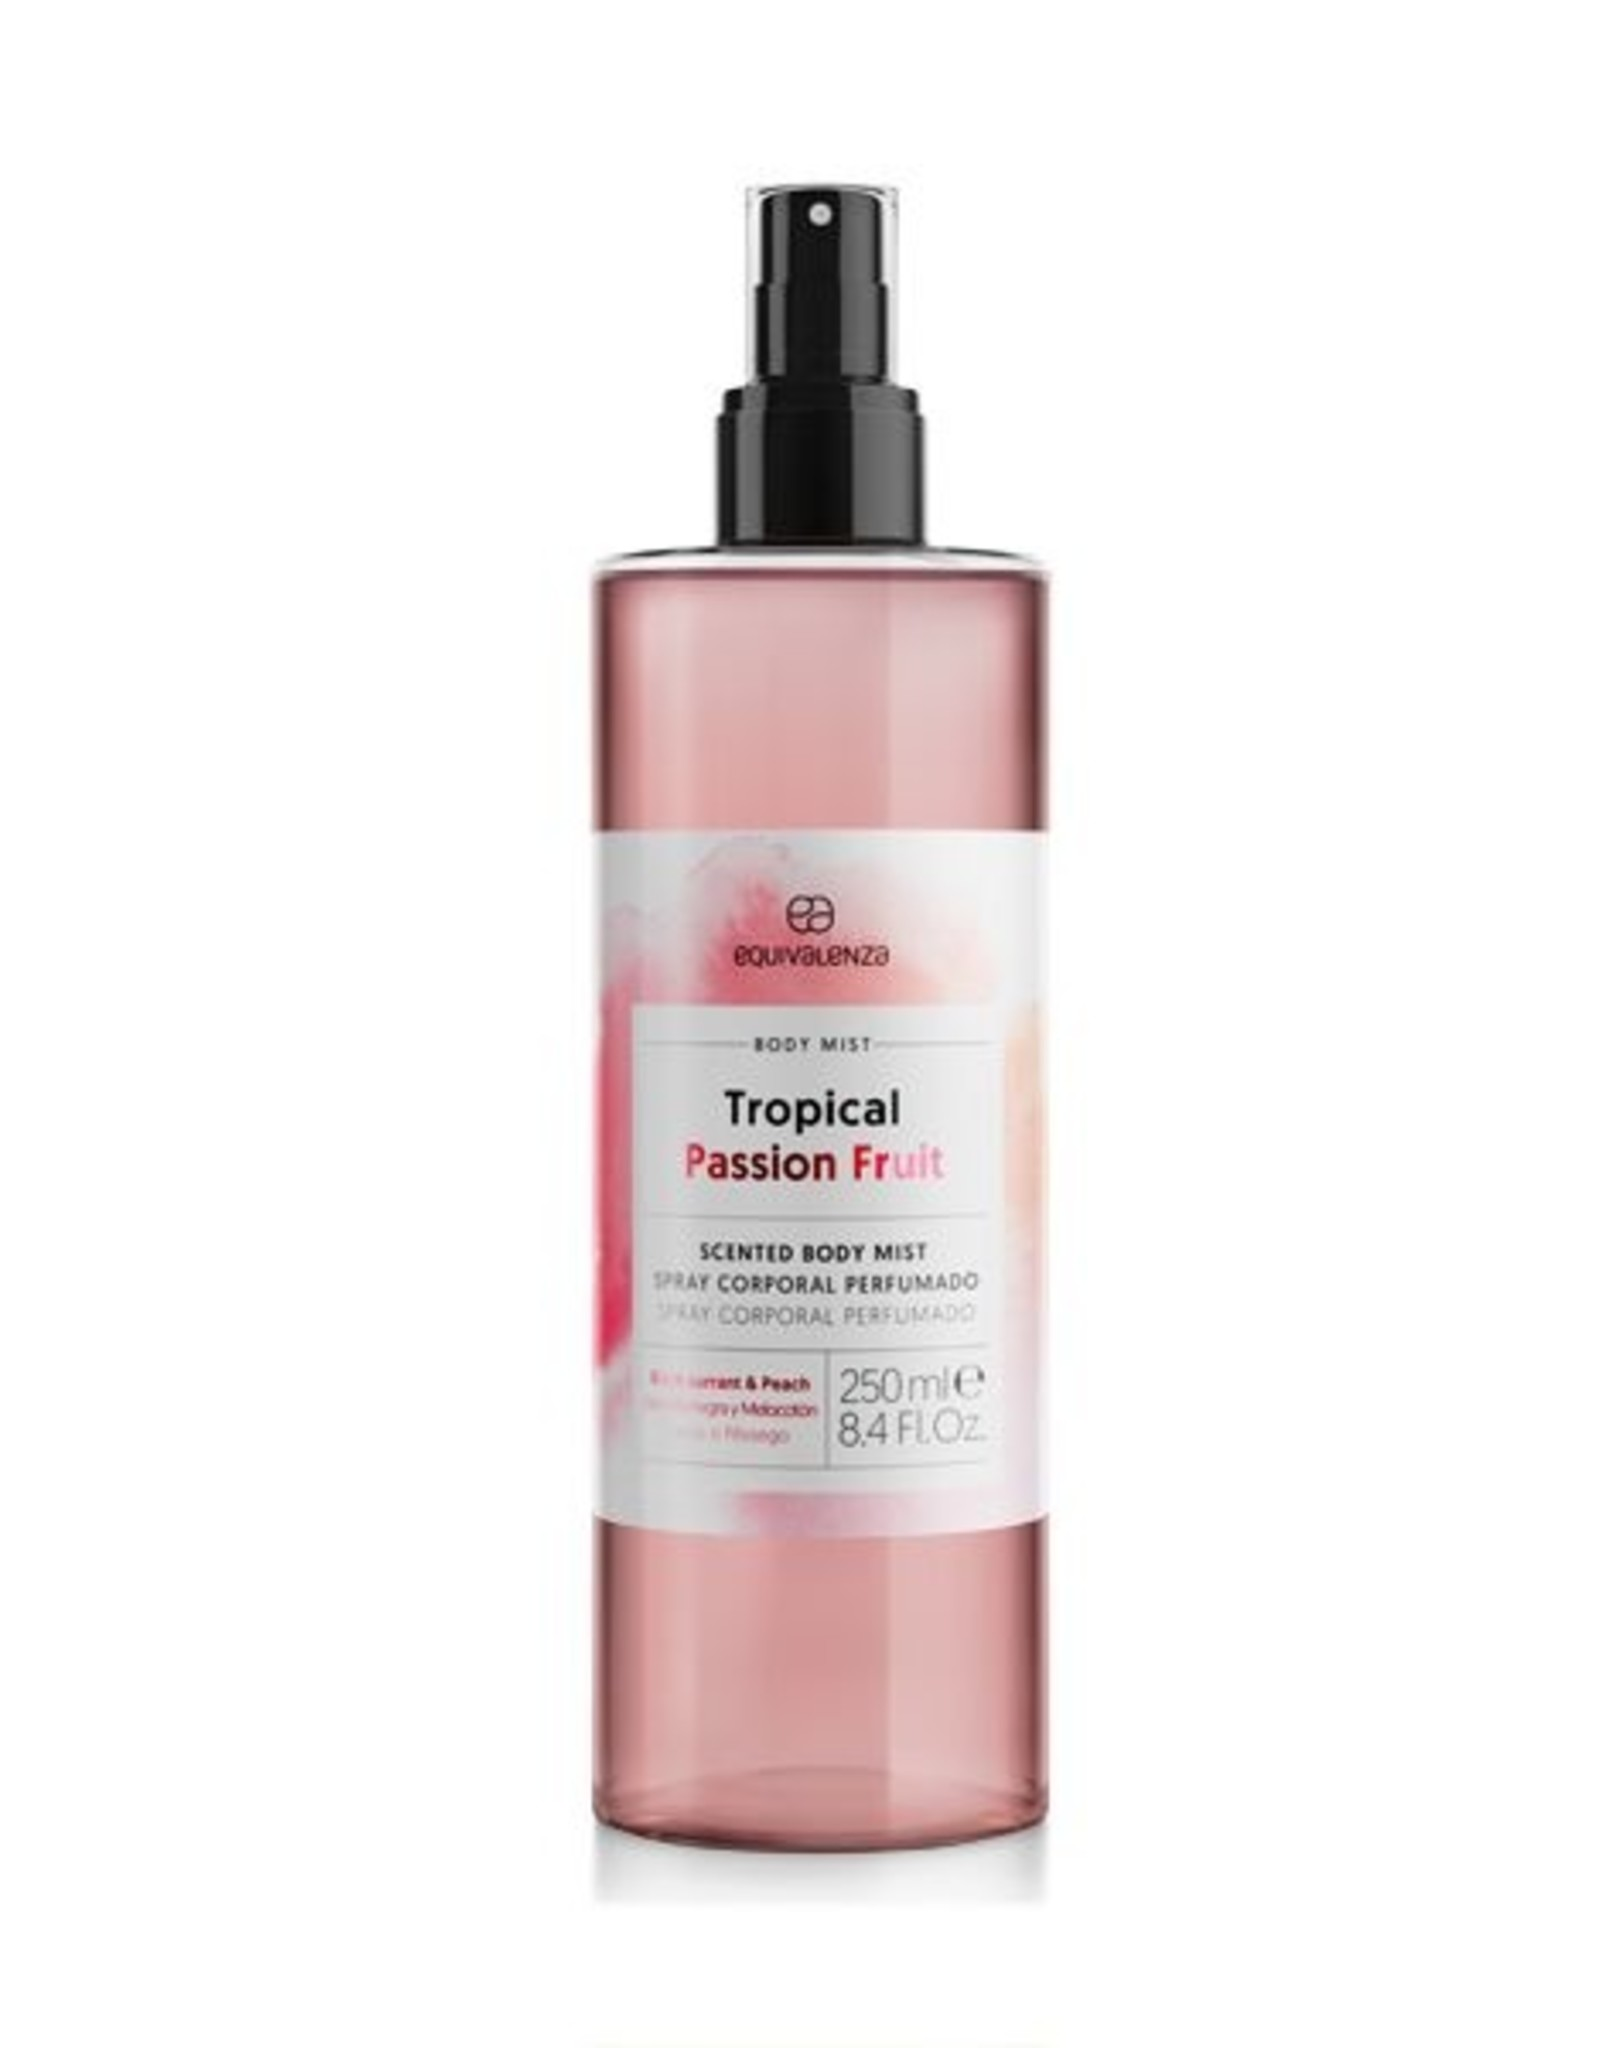 Equivalenza Tropical Passion Fruit Body Mist